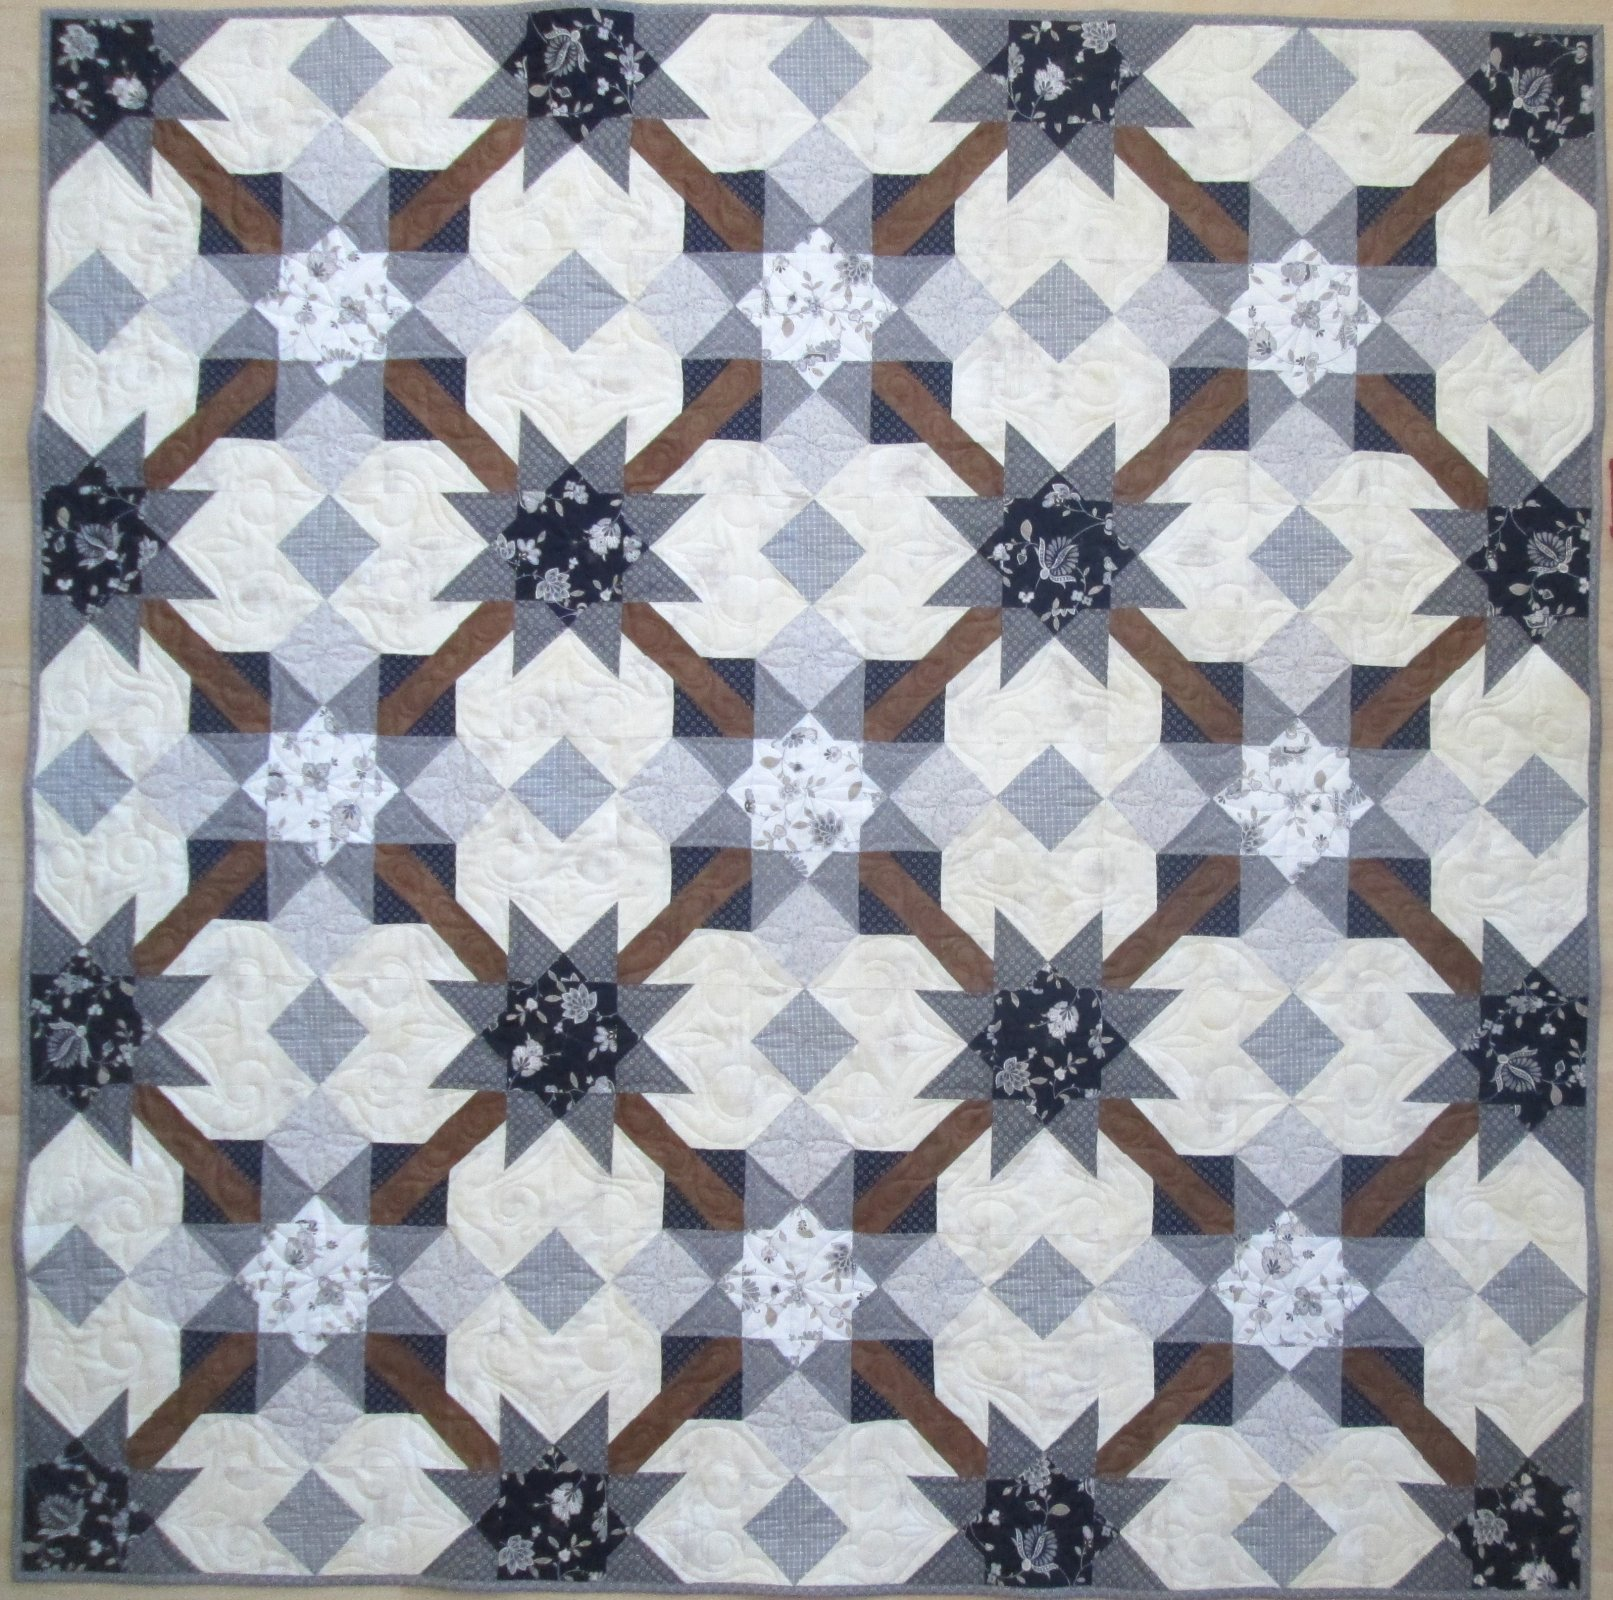 Special Edition Gathering Quilt Sample 72 x 72